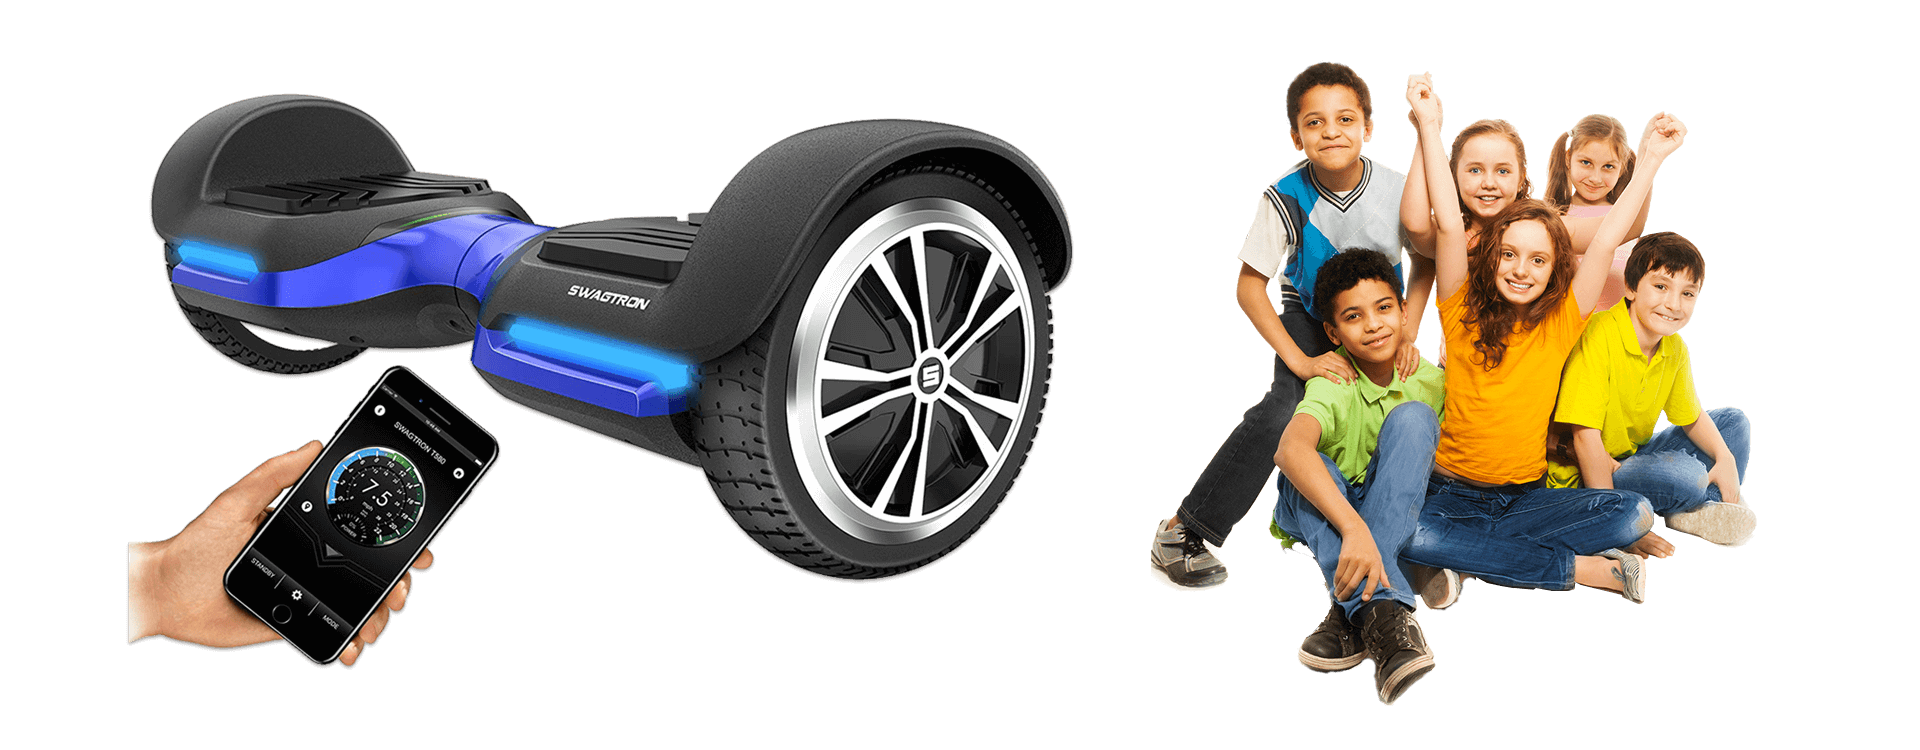 Best Hoverboards For Kids - Reviews & Buyer's Guide for 2019